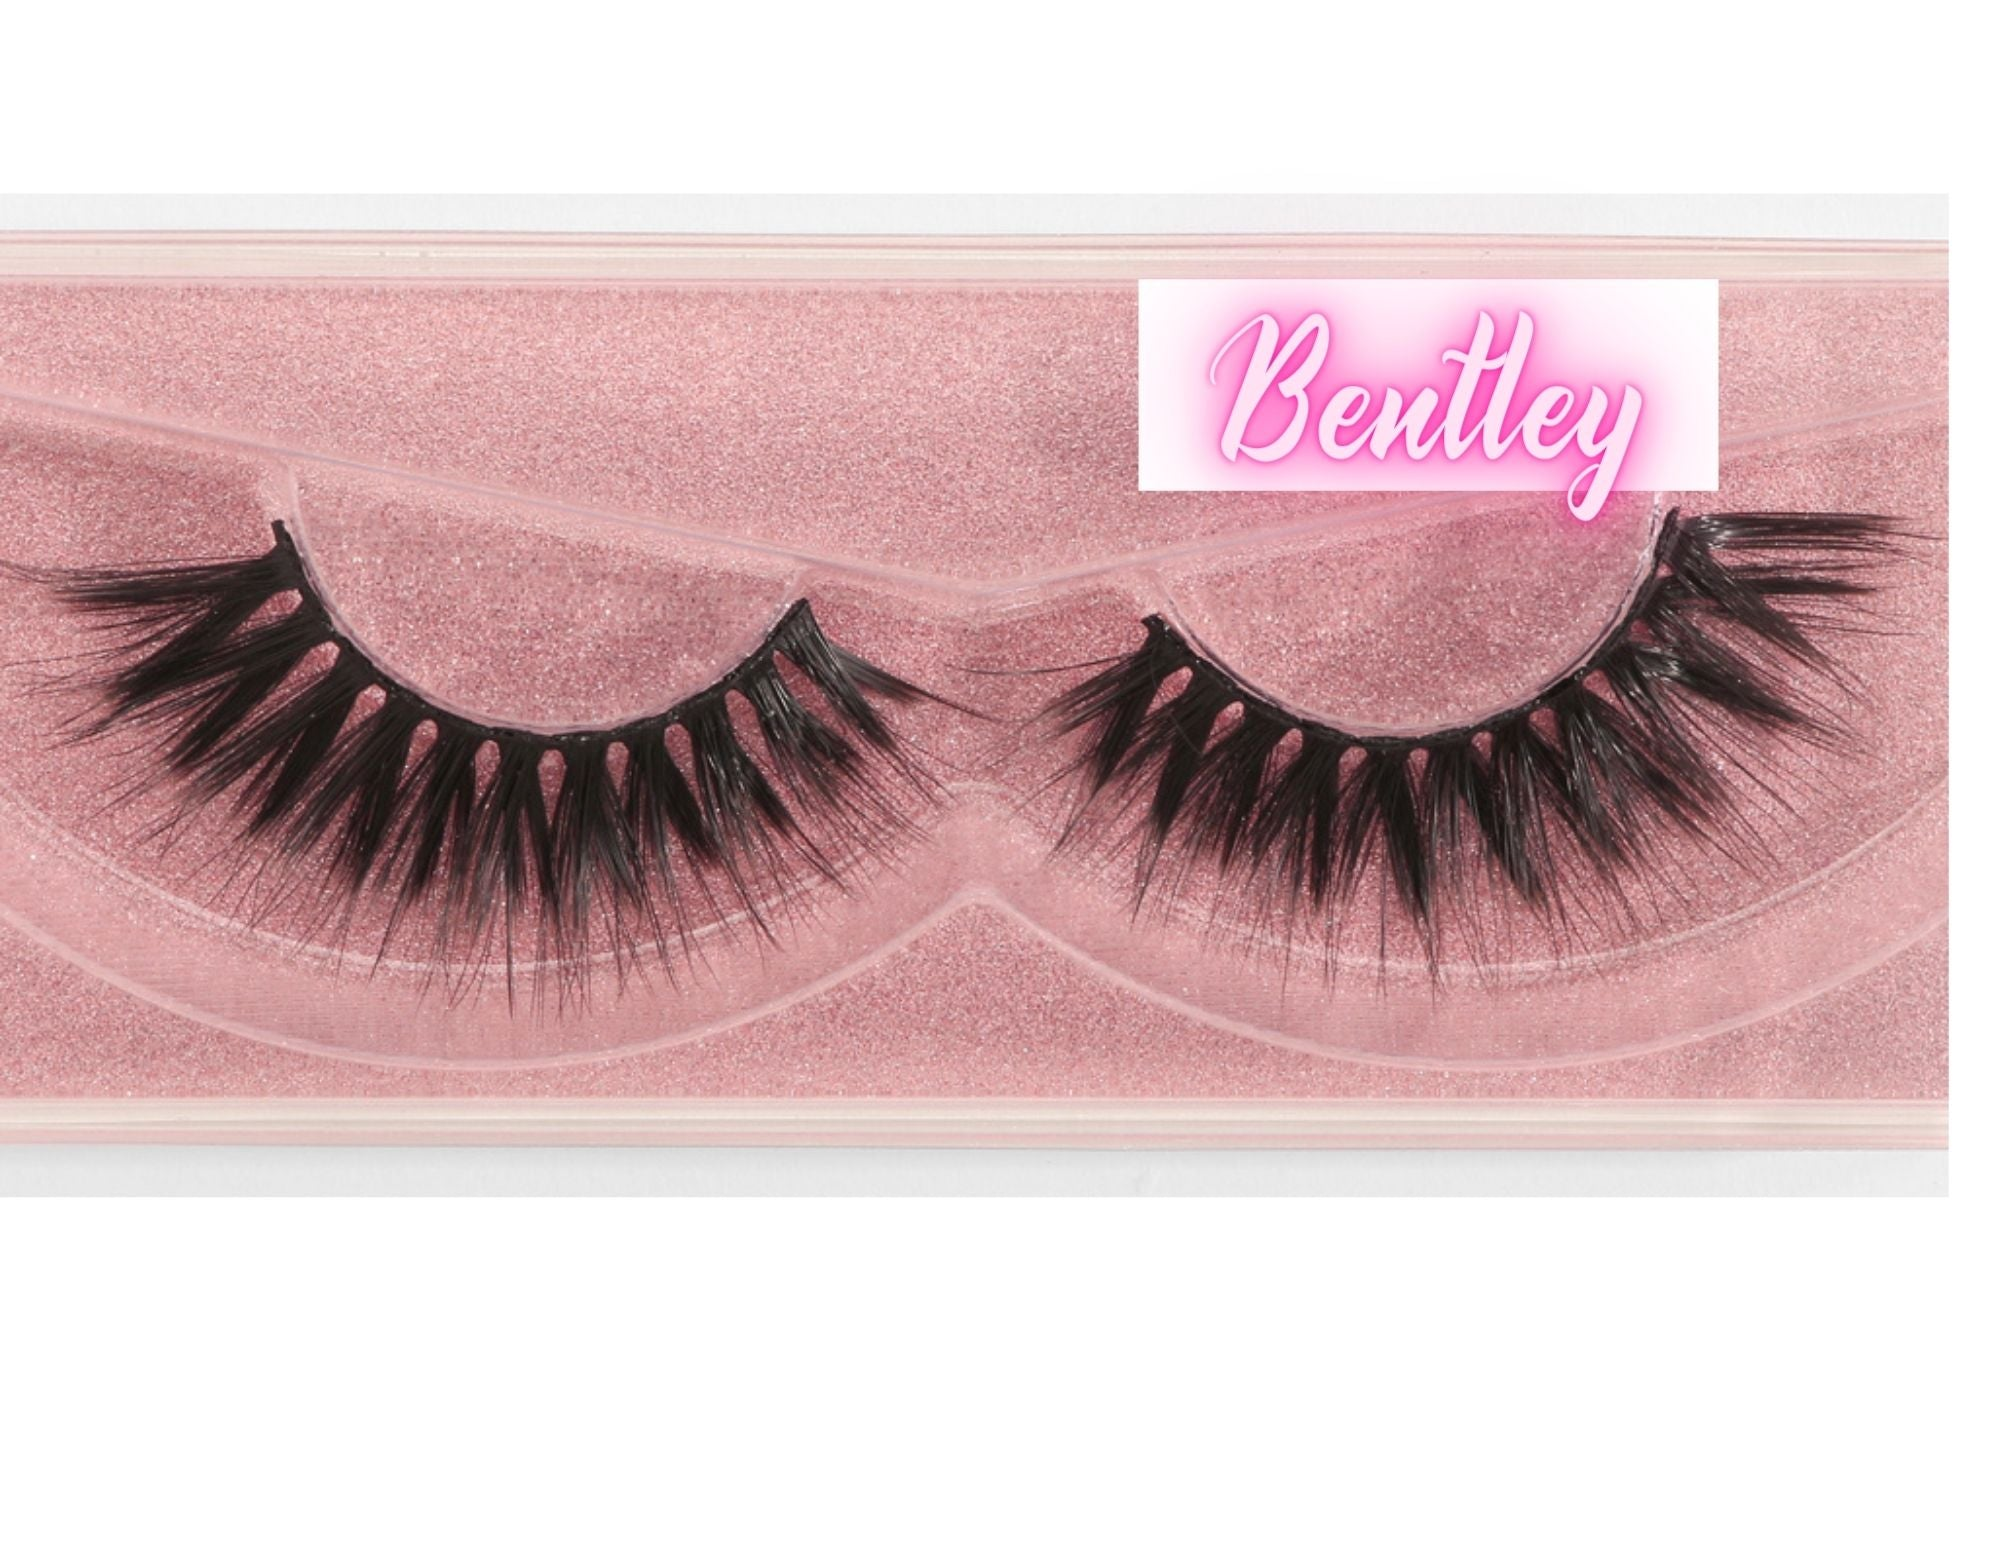 Bentley Lash